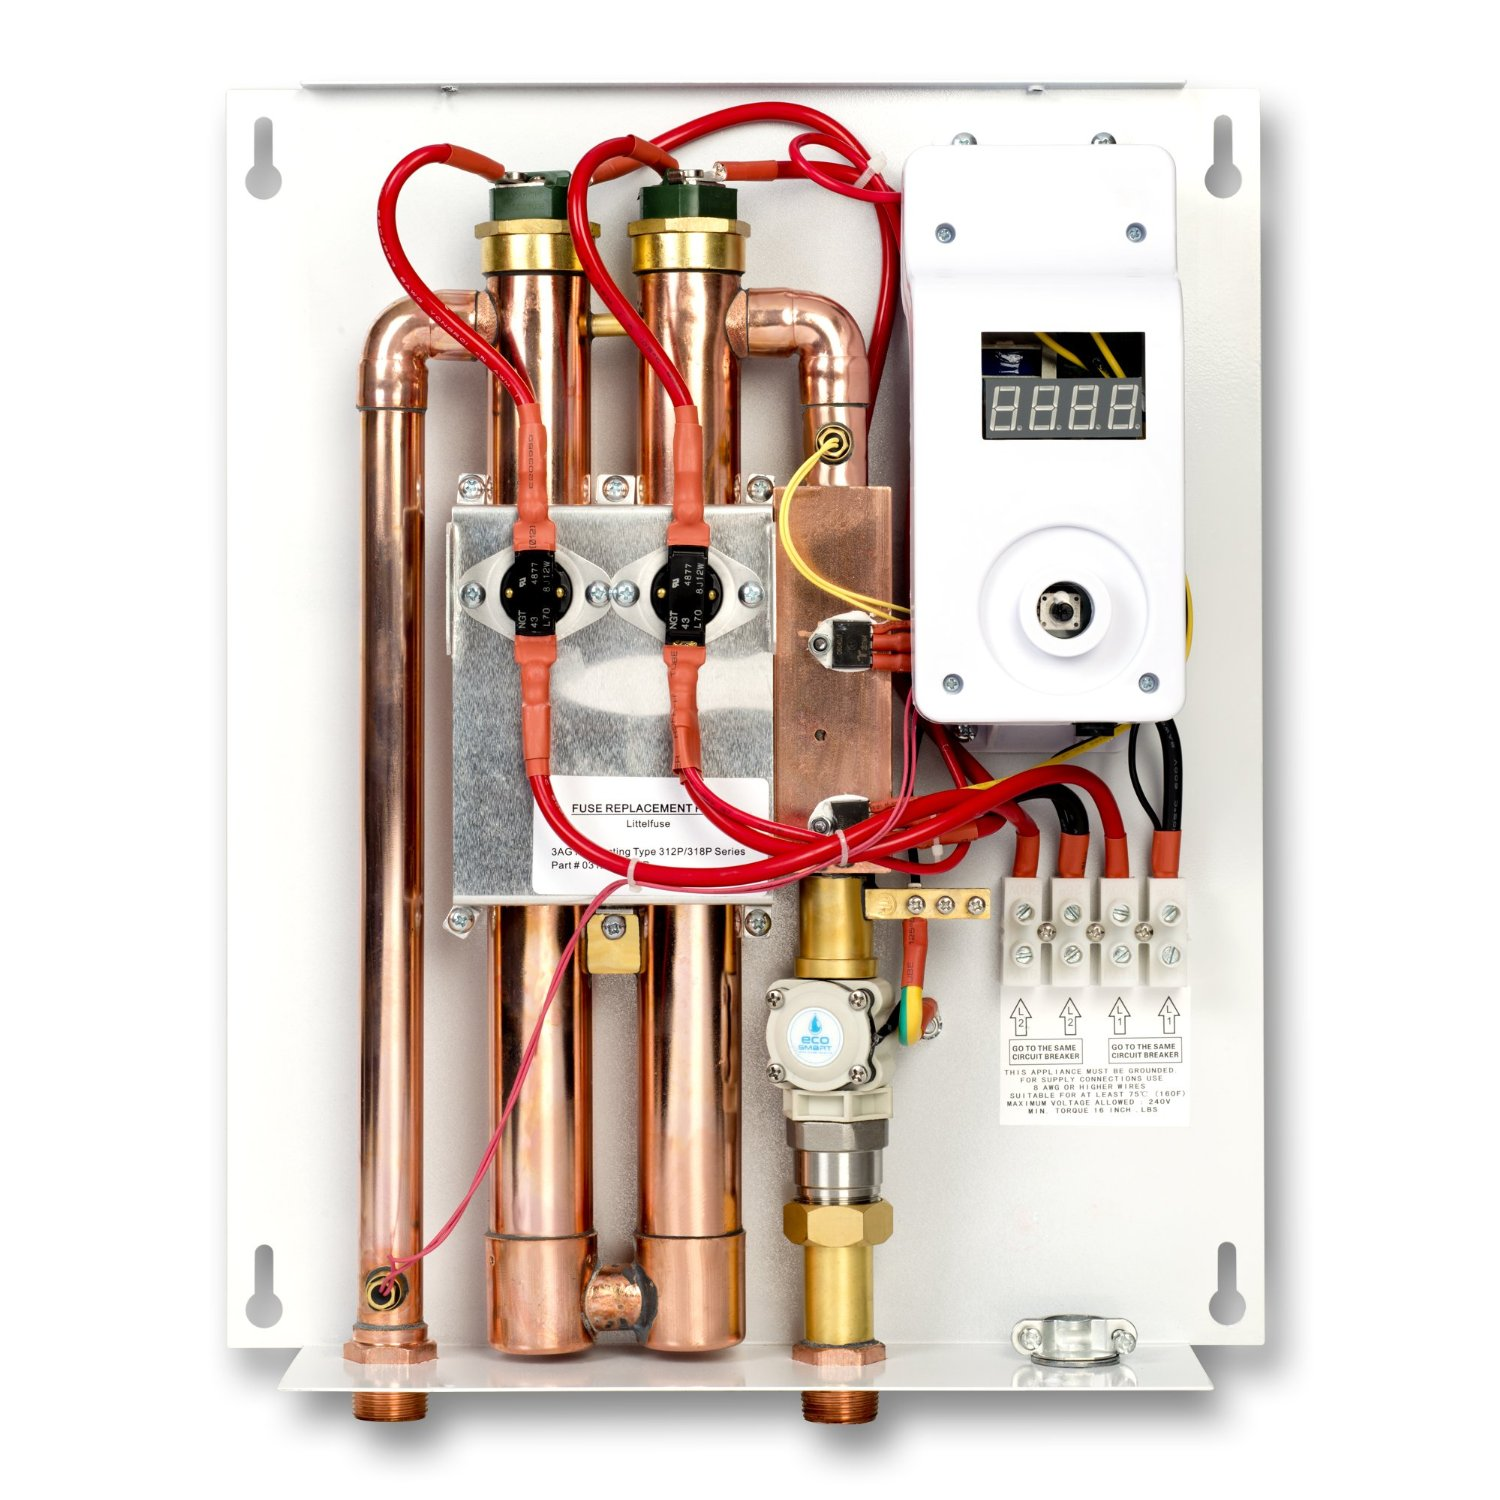 rheem tankless electric water heater wiring diagram for house lighting circuit ecosmart eco 18 patented